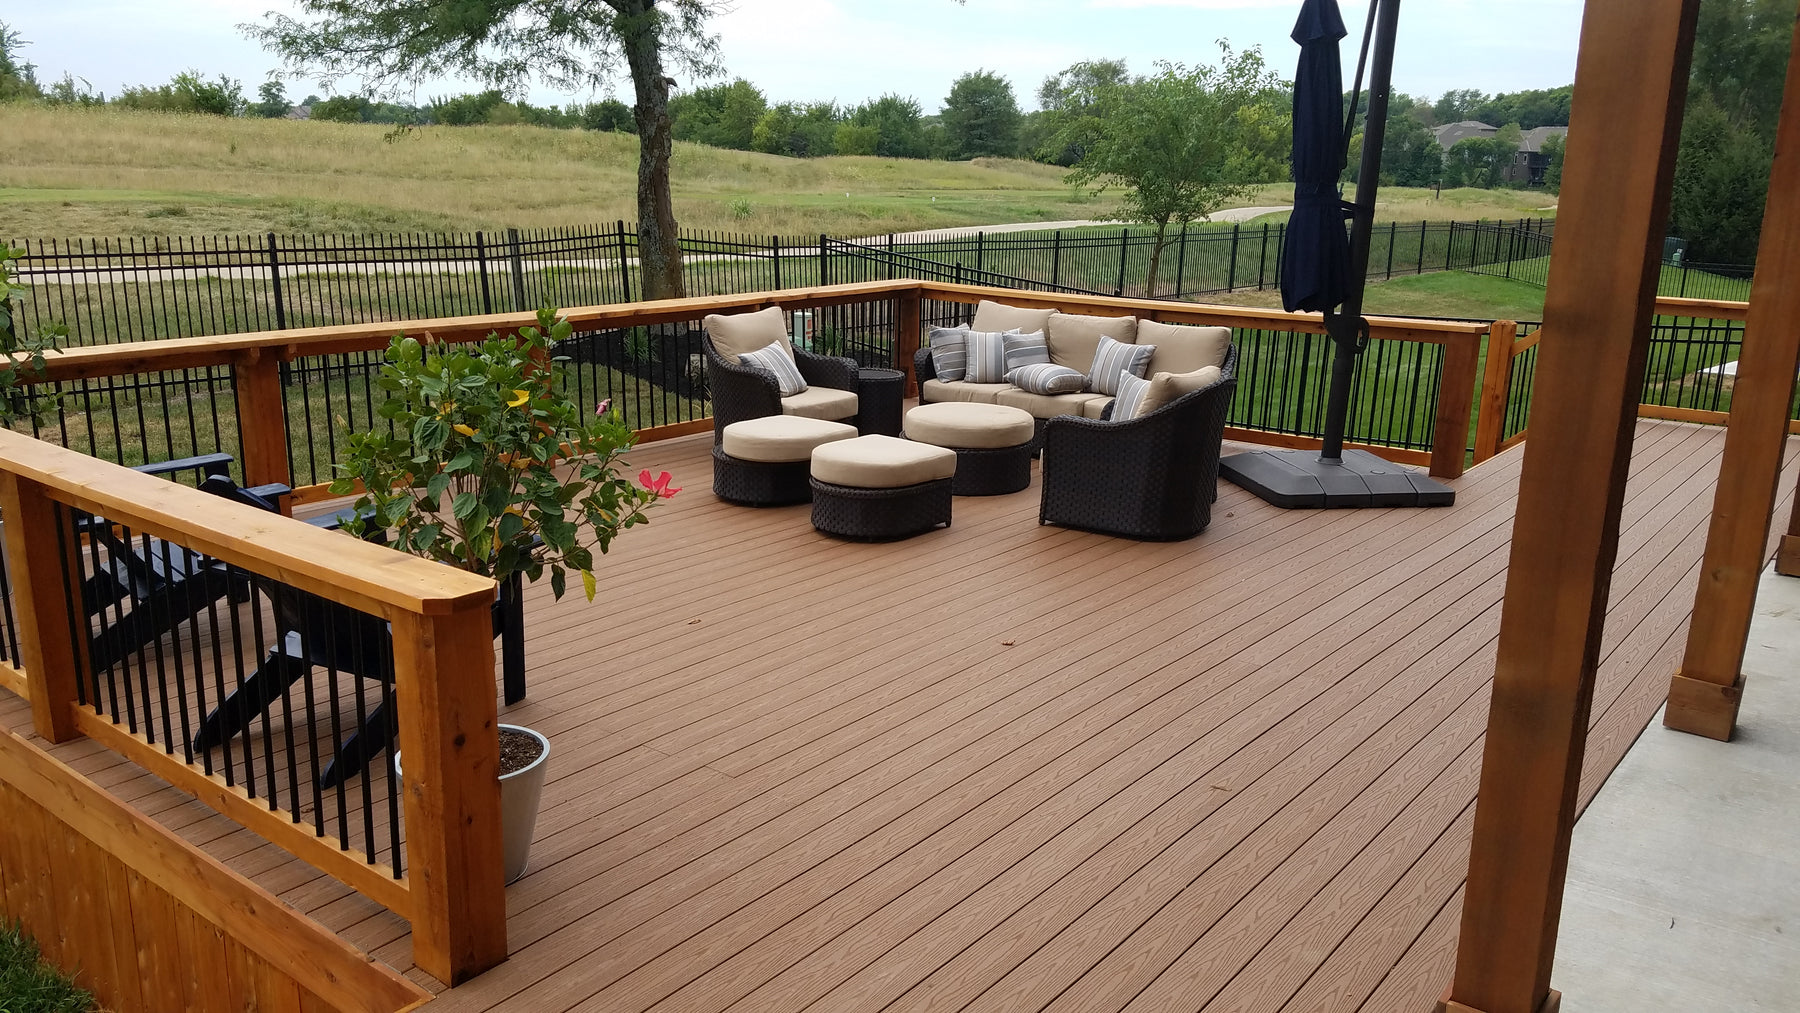 Fiberon Deck Capped Decking made from recycled plastics and wood fibers to make an encapuslated and scalloped decking board